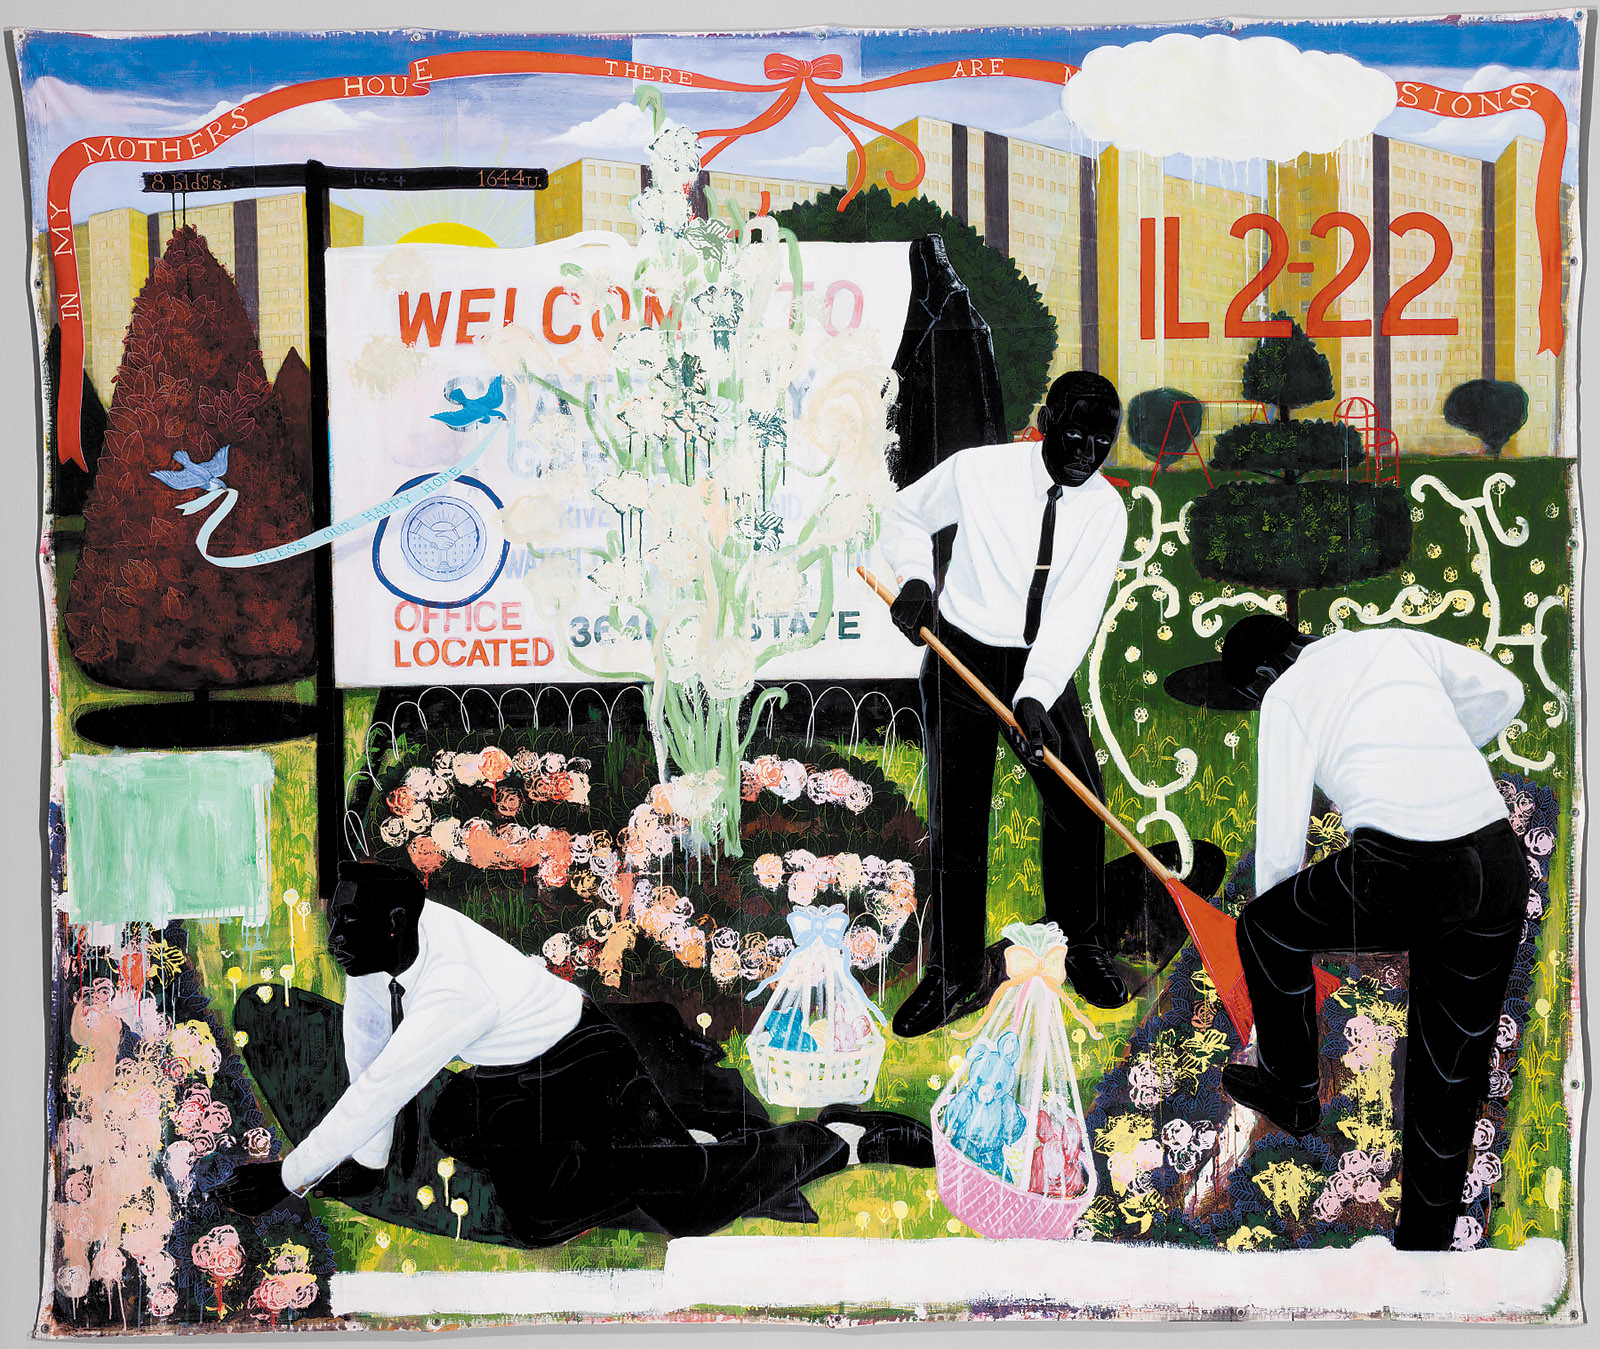 Kerry James Marshall: Many Mansions, 114 x 135 inches, 1994